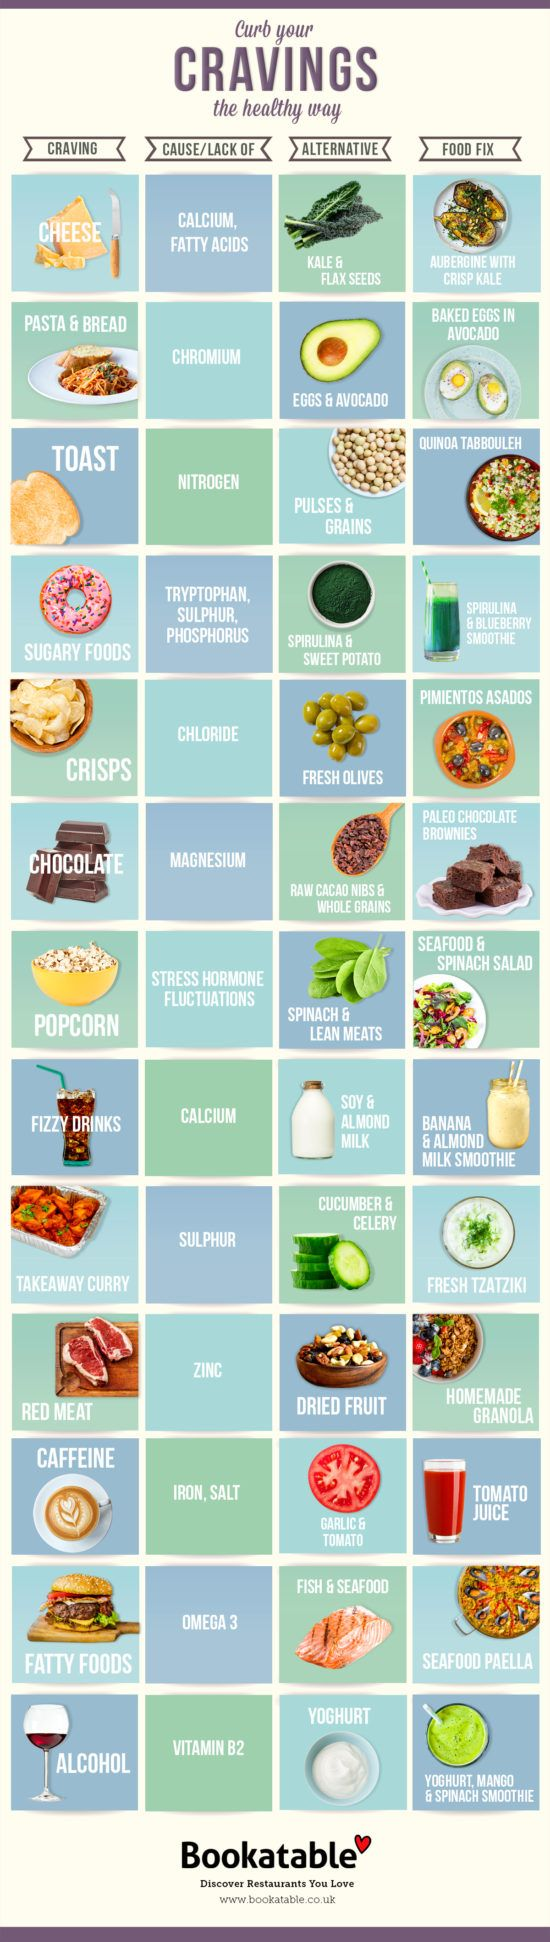 Amazing Ways to Lose Weight Quickly And Easily | The WHOot                                                                                                                                                                                 More